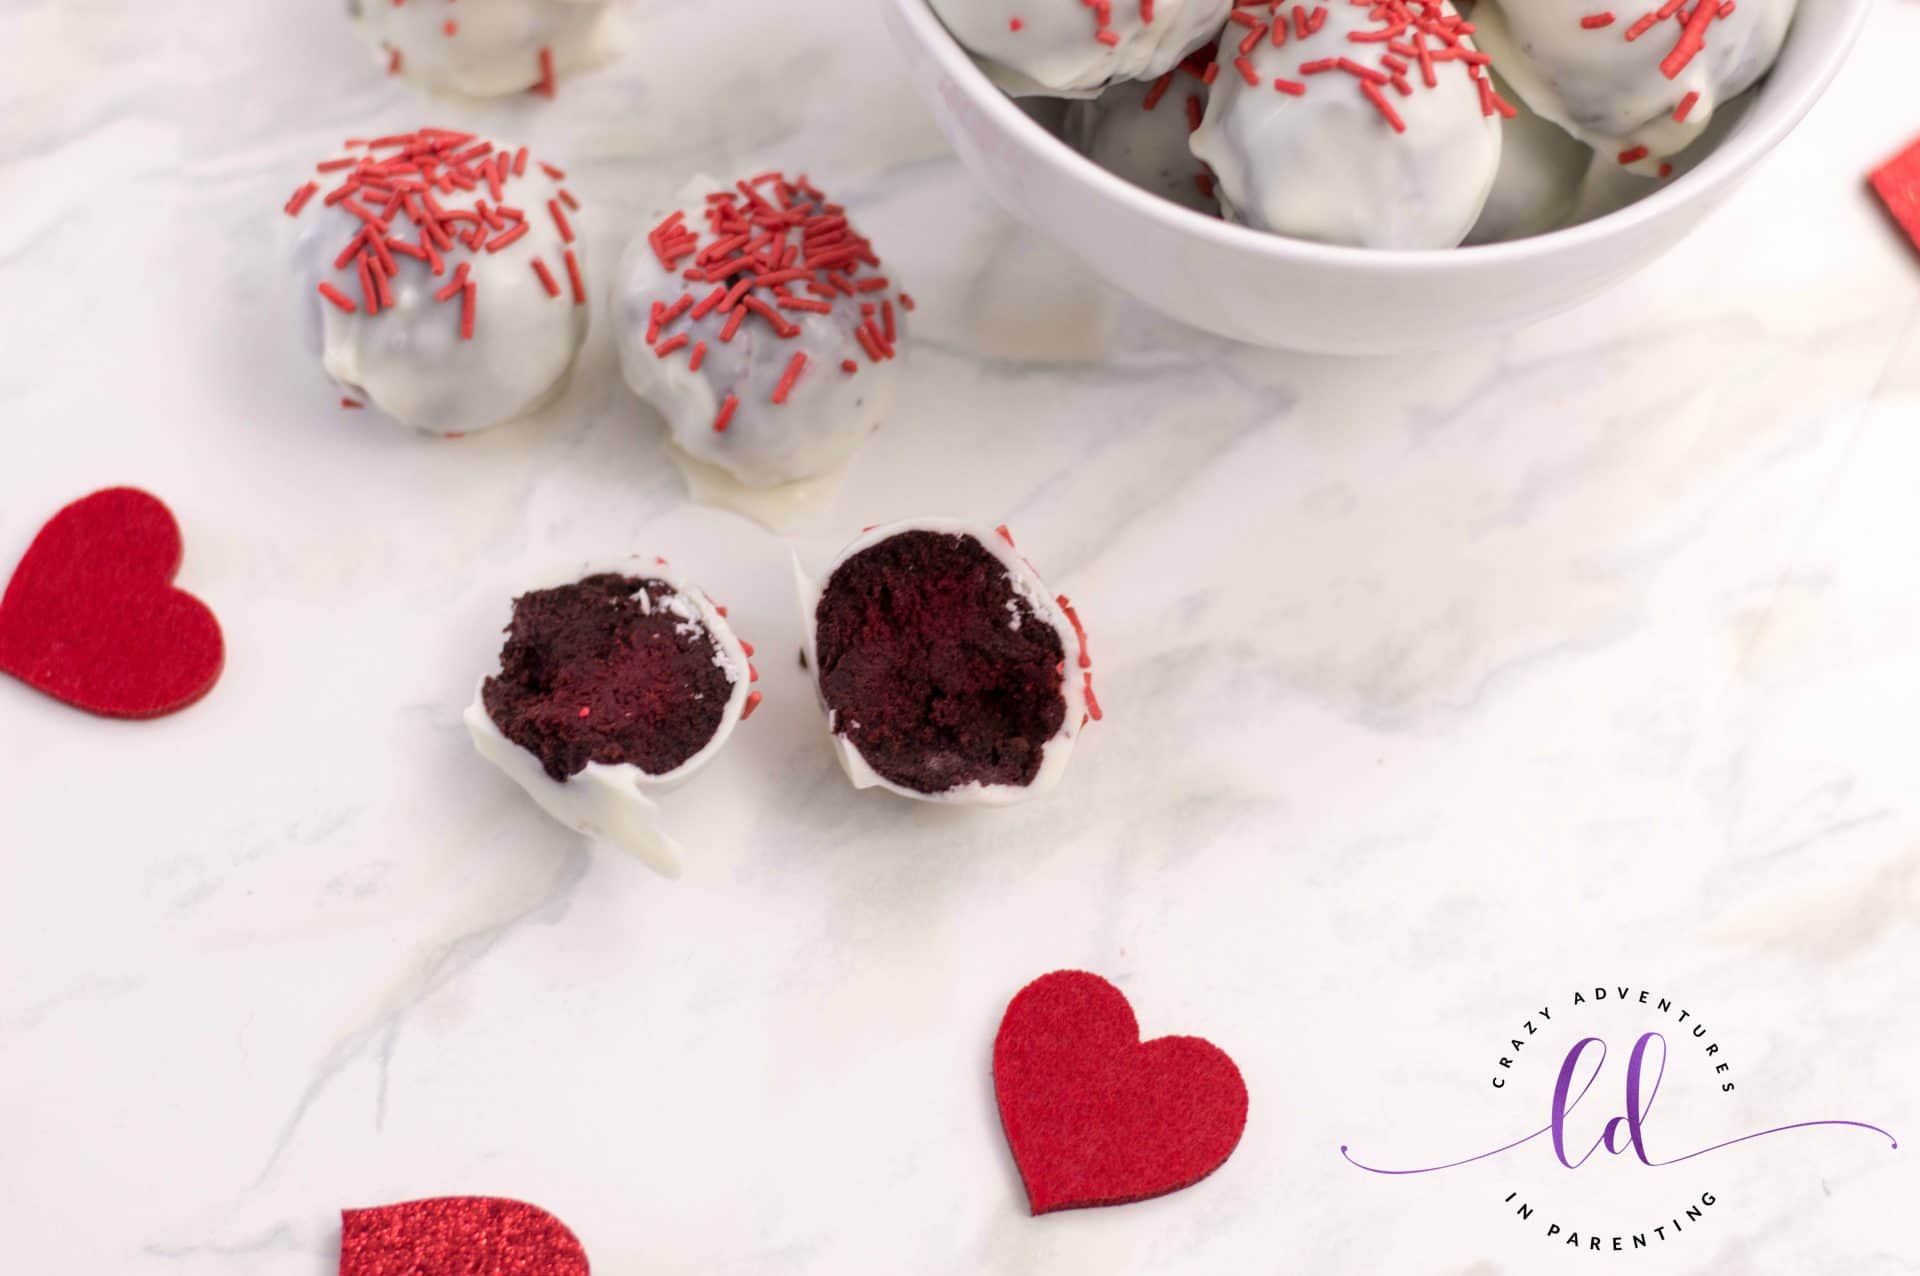 Cake-Filled Red Velvet Truffles